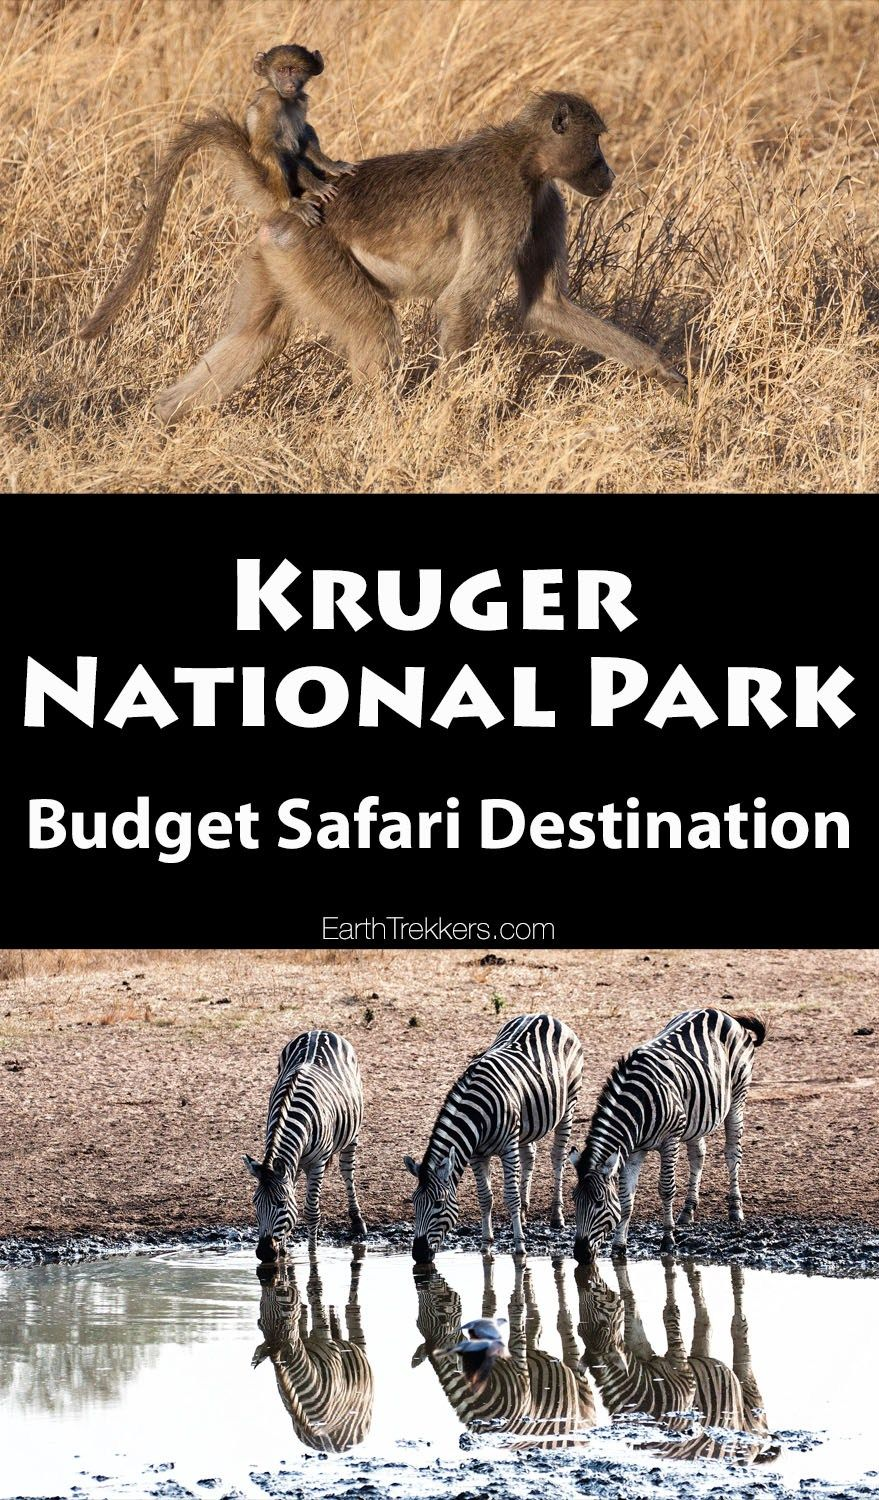 Why Kruger National Park Should be on Your List as a Budget